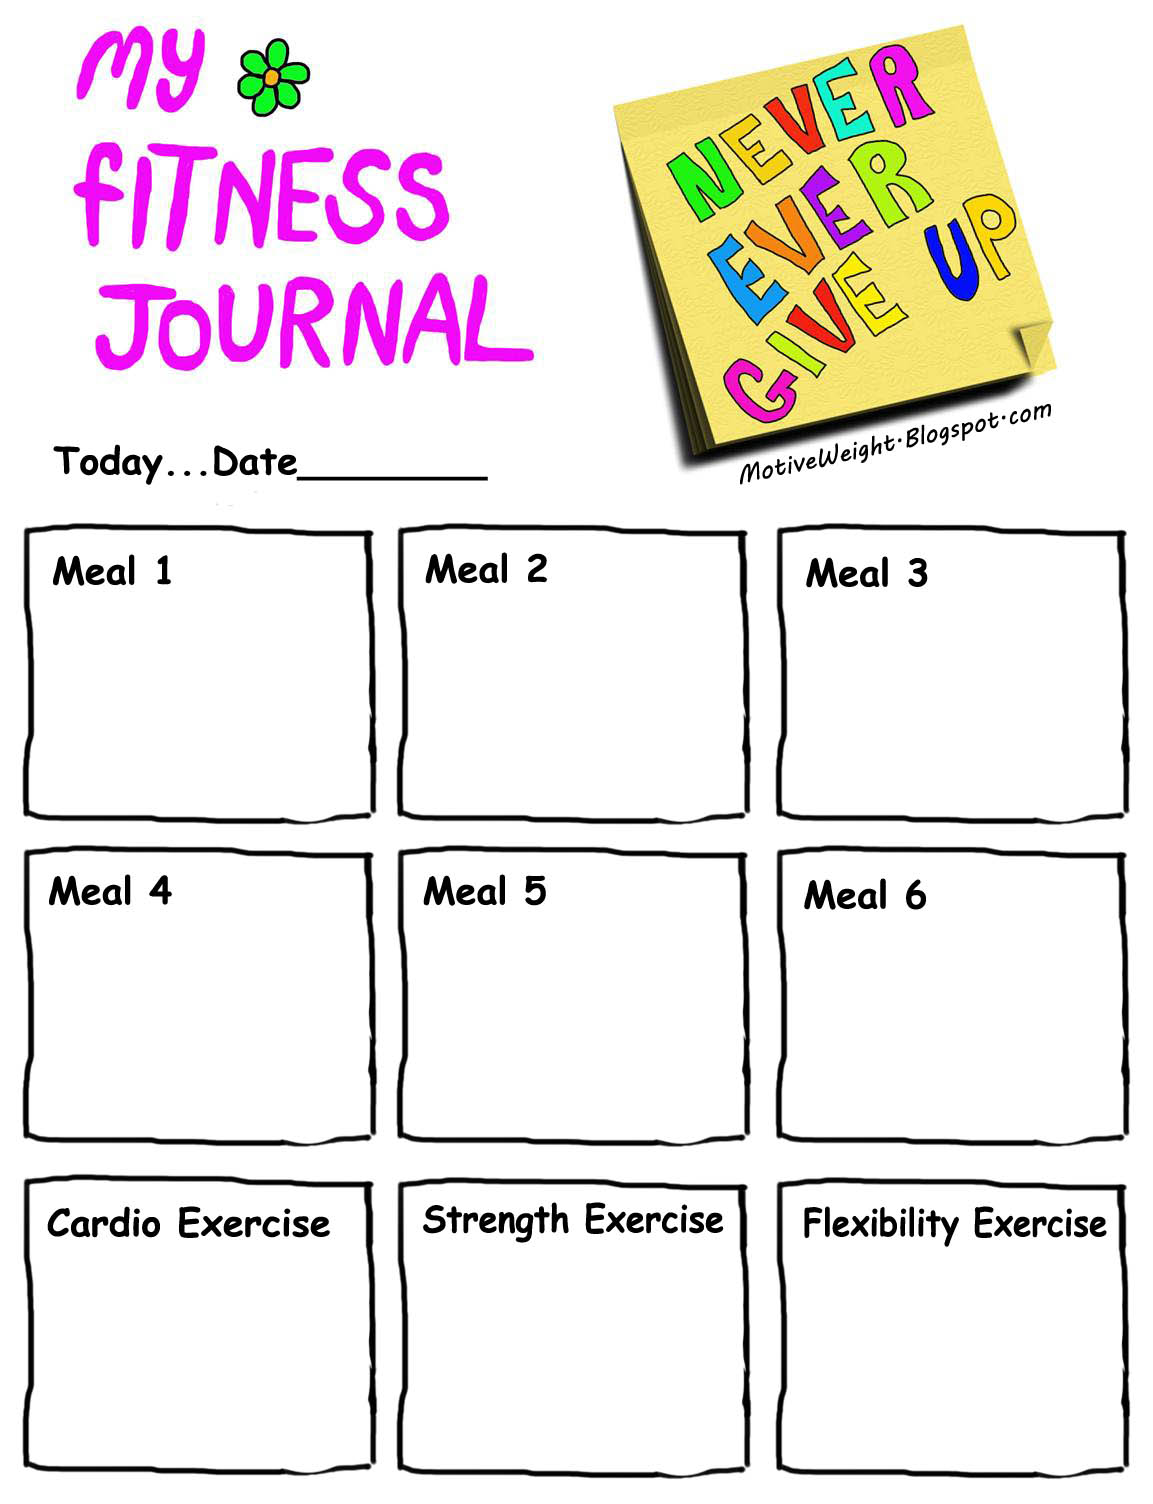 Motiveweight keep a fitness journal for Fitness journal template printable